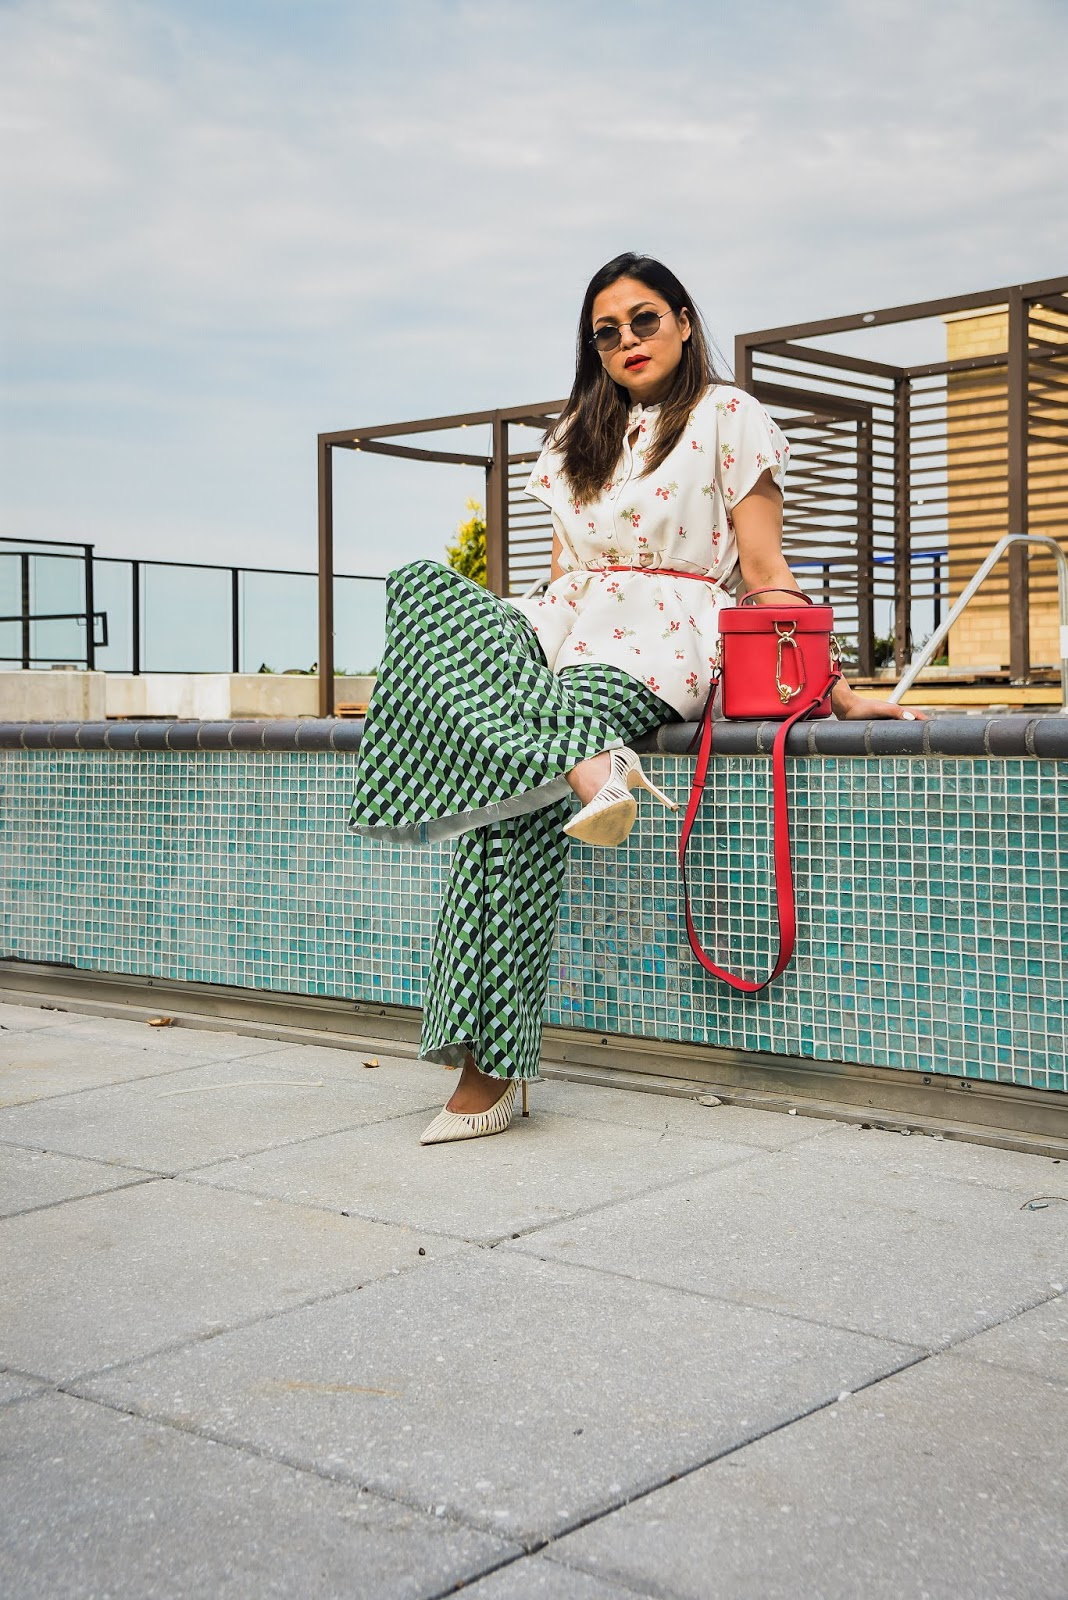 printed jeans, Rent the runway, printed outfit, spring outfit, white peplum top, free people jeans, zac posen red bag, saumya shiohare, myriad musings